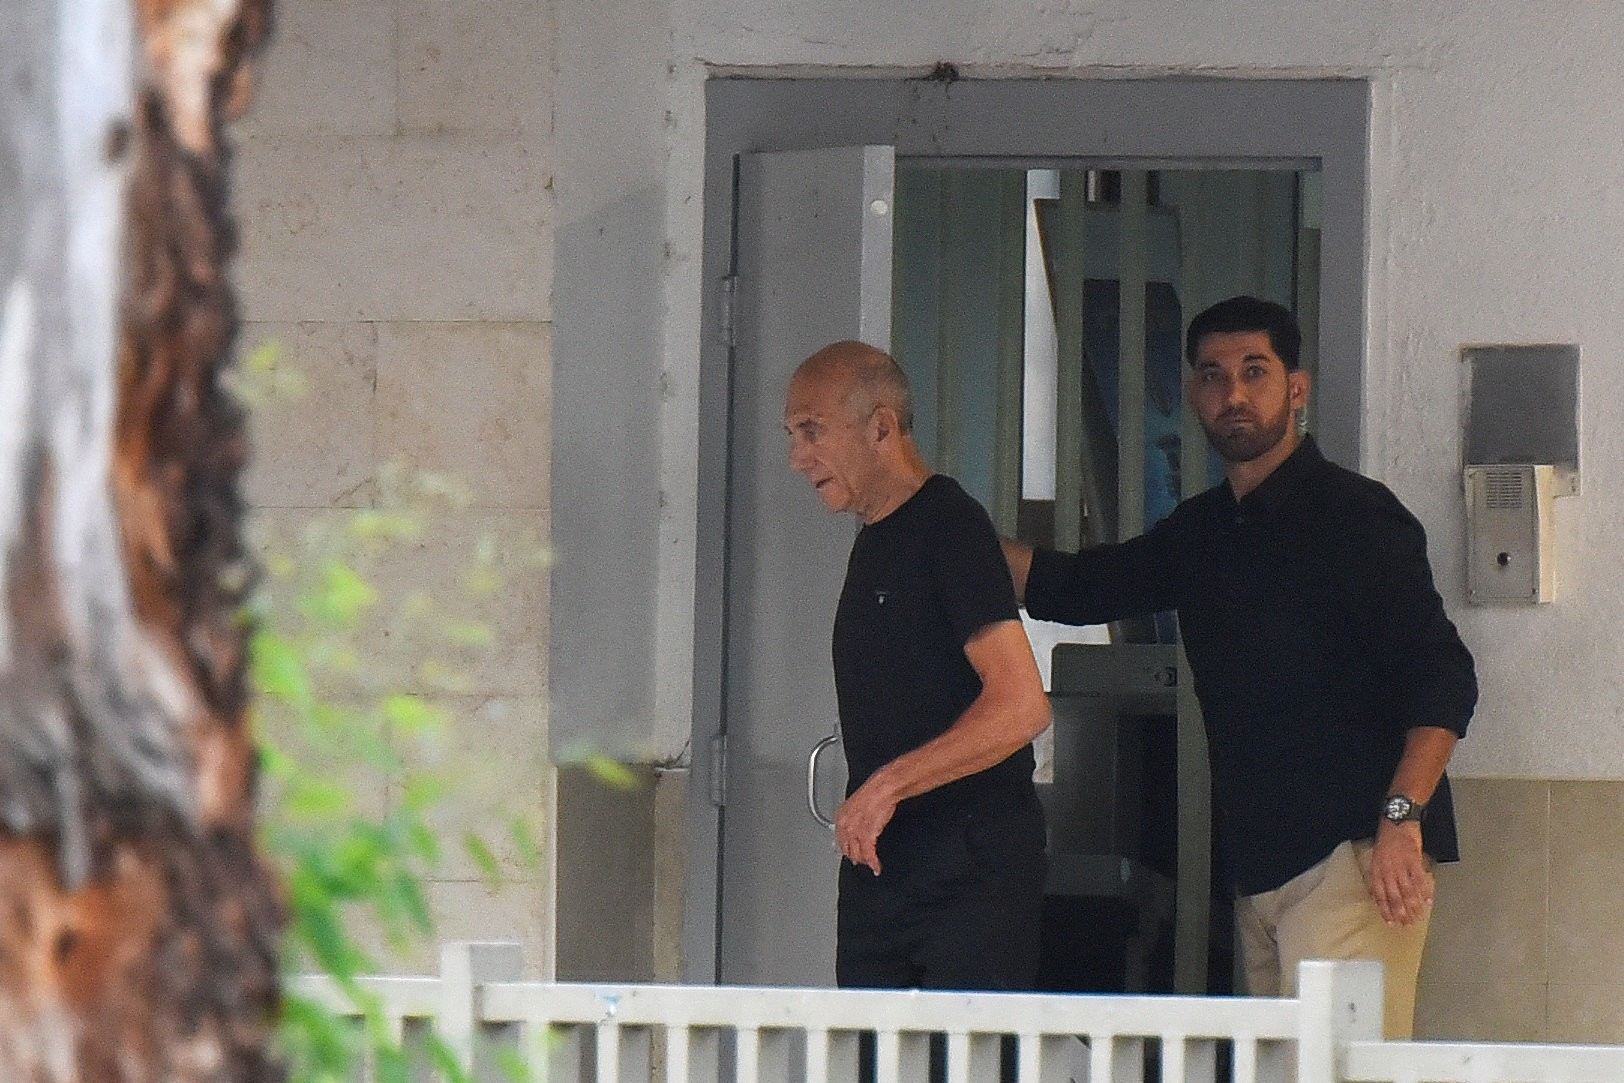 Ex-Israeli PM Olmert walks out of the prison door as he is released from prison after a parole board decided to cut his sentence by a third, at Maasiyahu prison July 2, 2017. (REUTERS Photo)